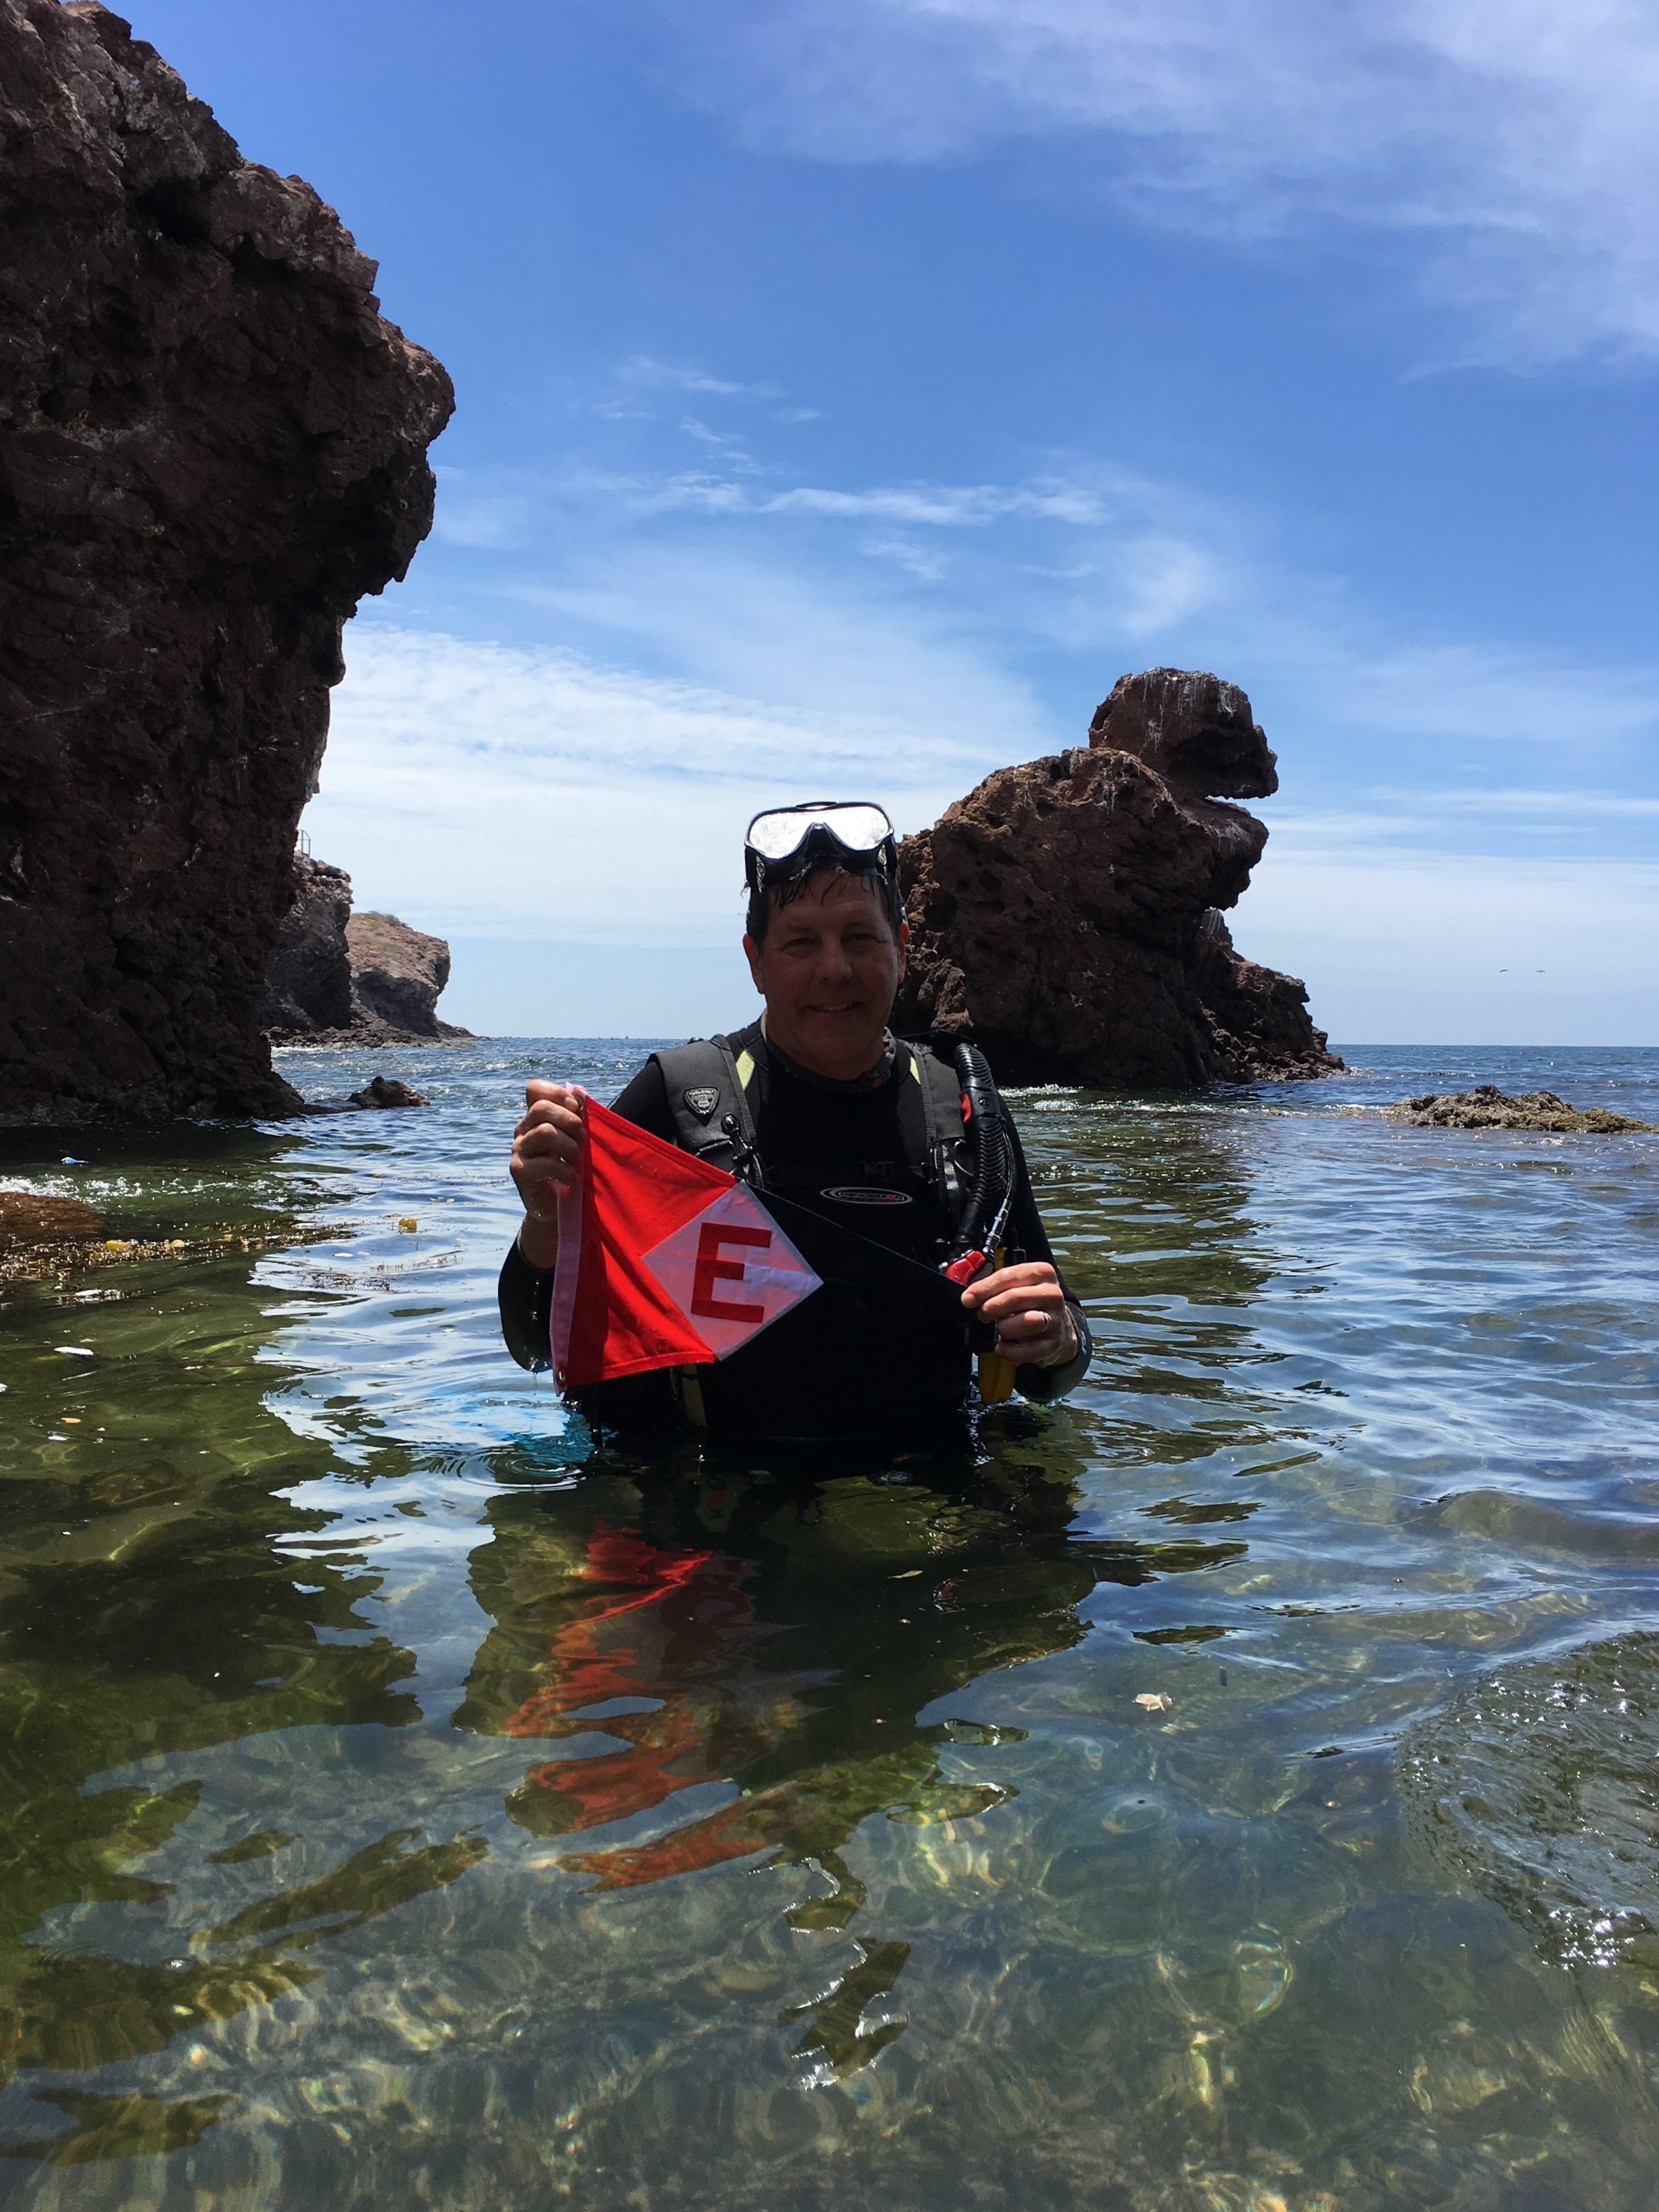 On a diving trip to the Sea of Cortez, Rob Moline takes a moment to show his EYC pride.